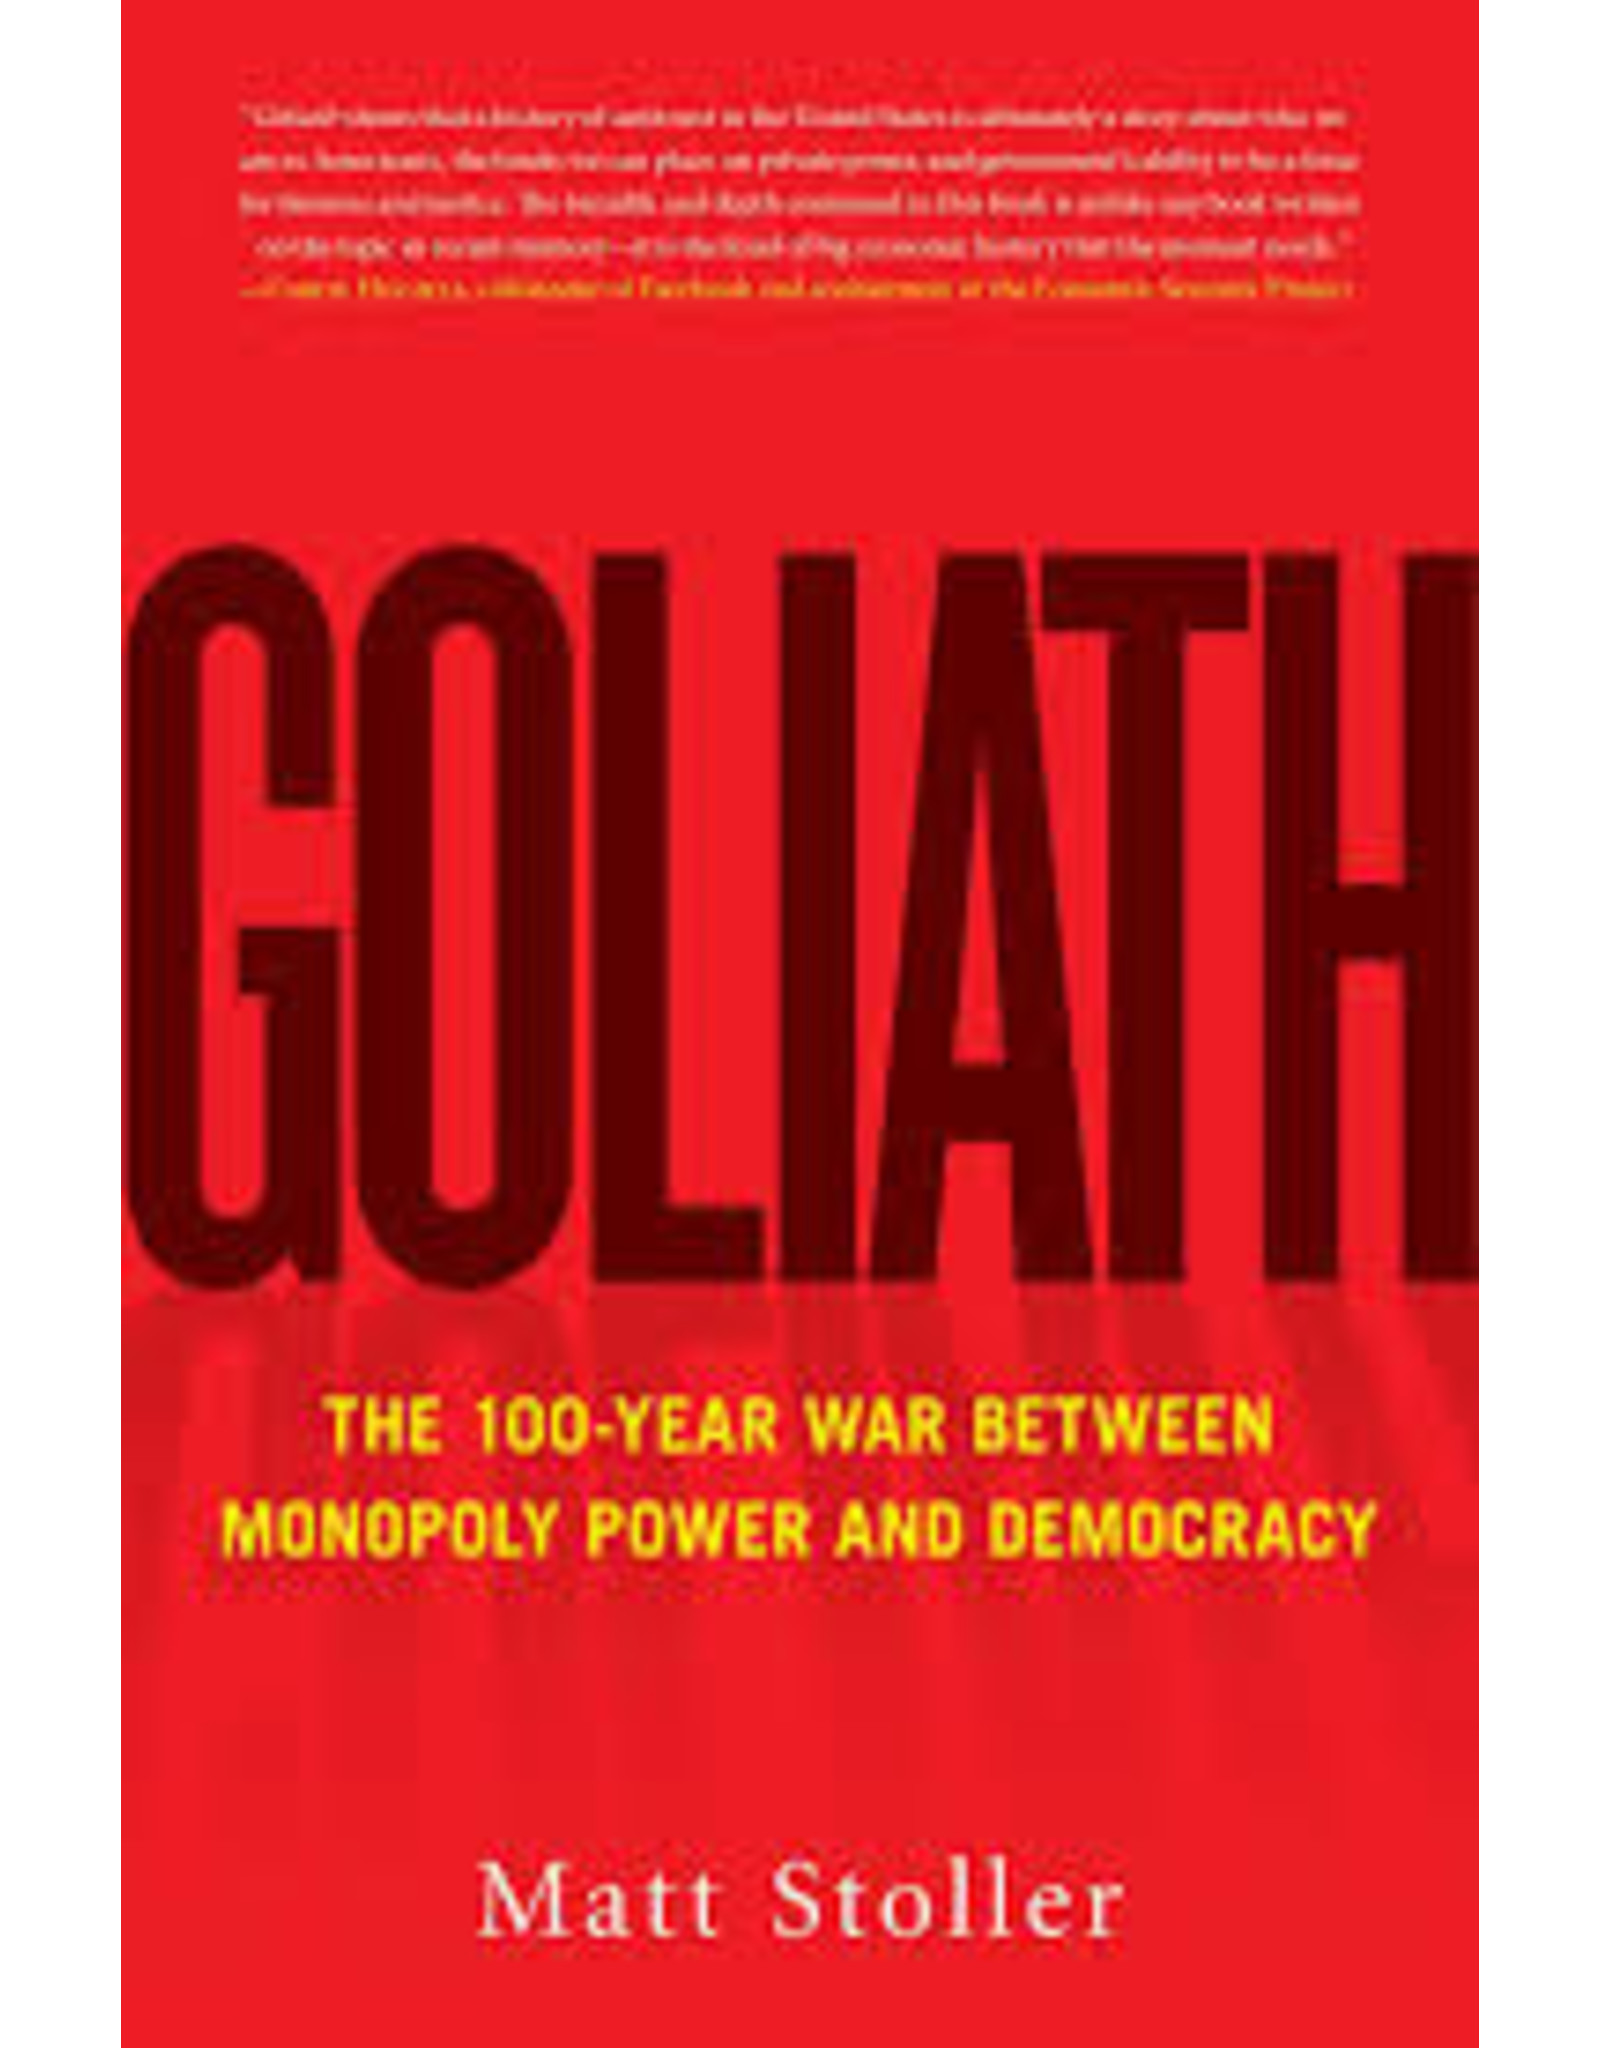 Books Goliath: The 100 Year War Between Monopoly Power and Democracy by Matt Stoller